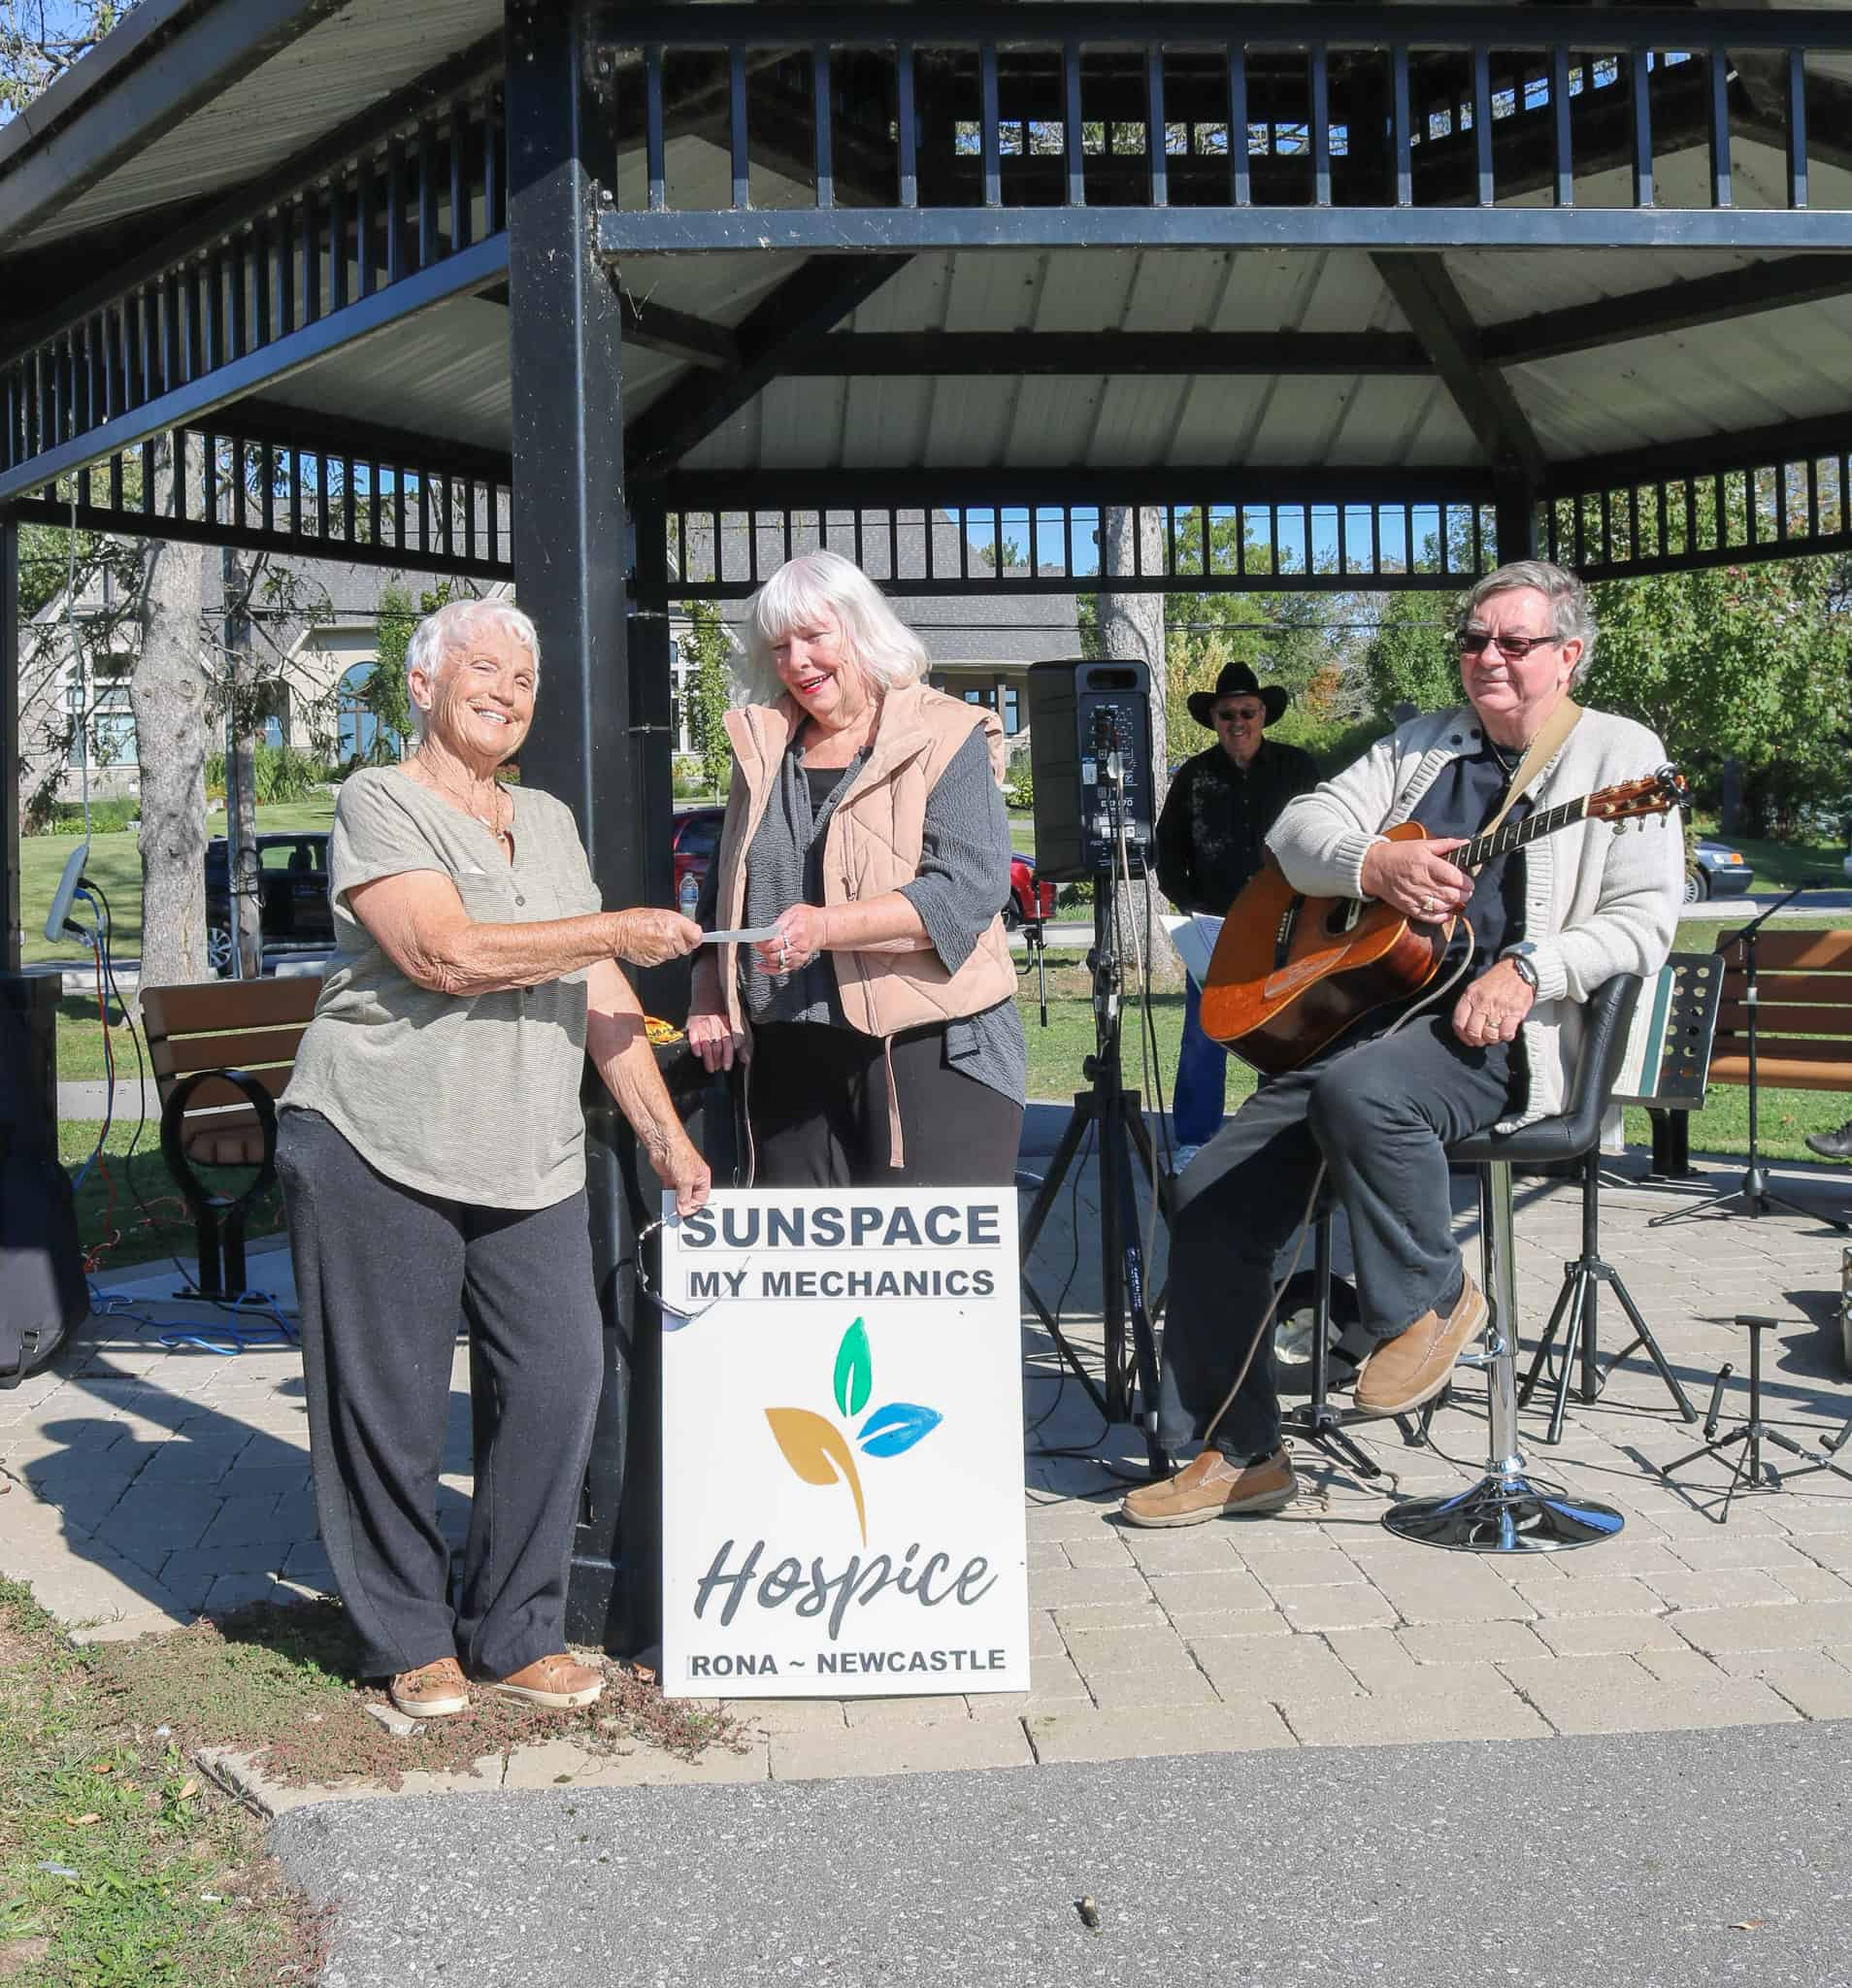 Coffee club supports Hospice